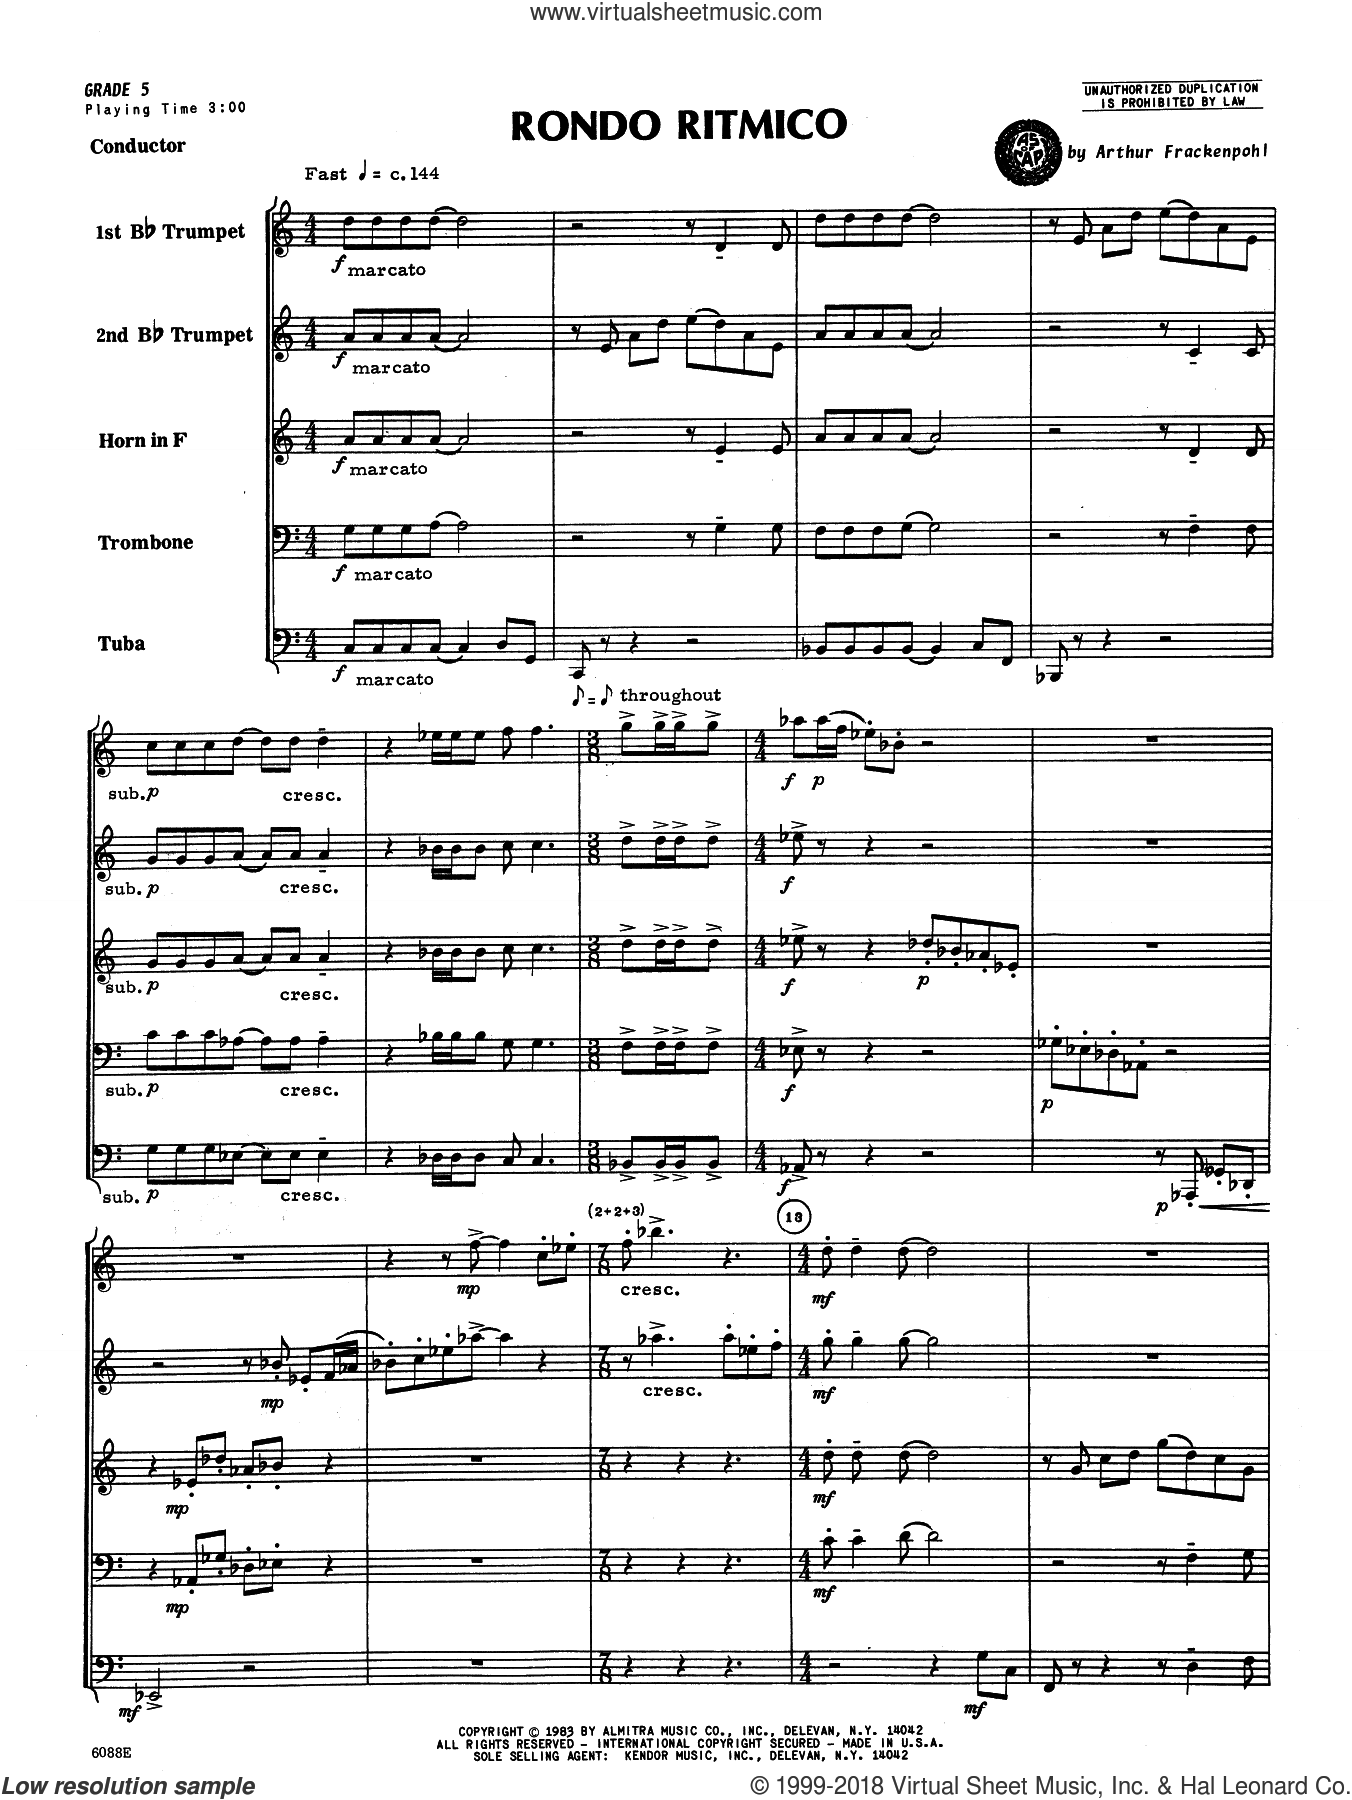 Rondo Ritmico (COMPLETE) sheet music for brass quintet by Arthur Frankenpohl, intermediate skill level